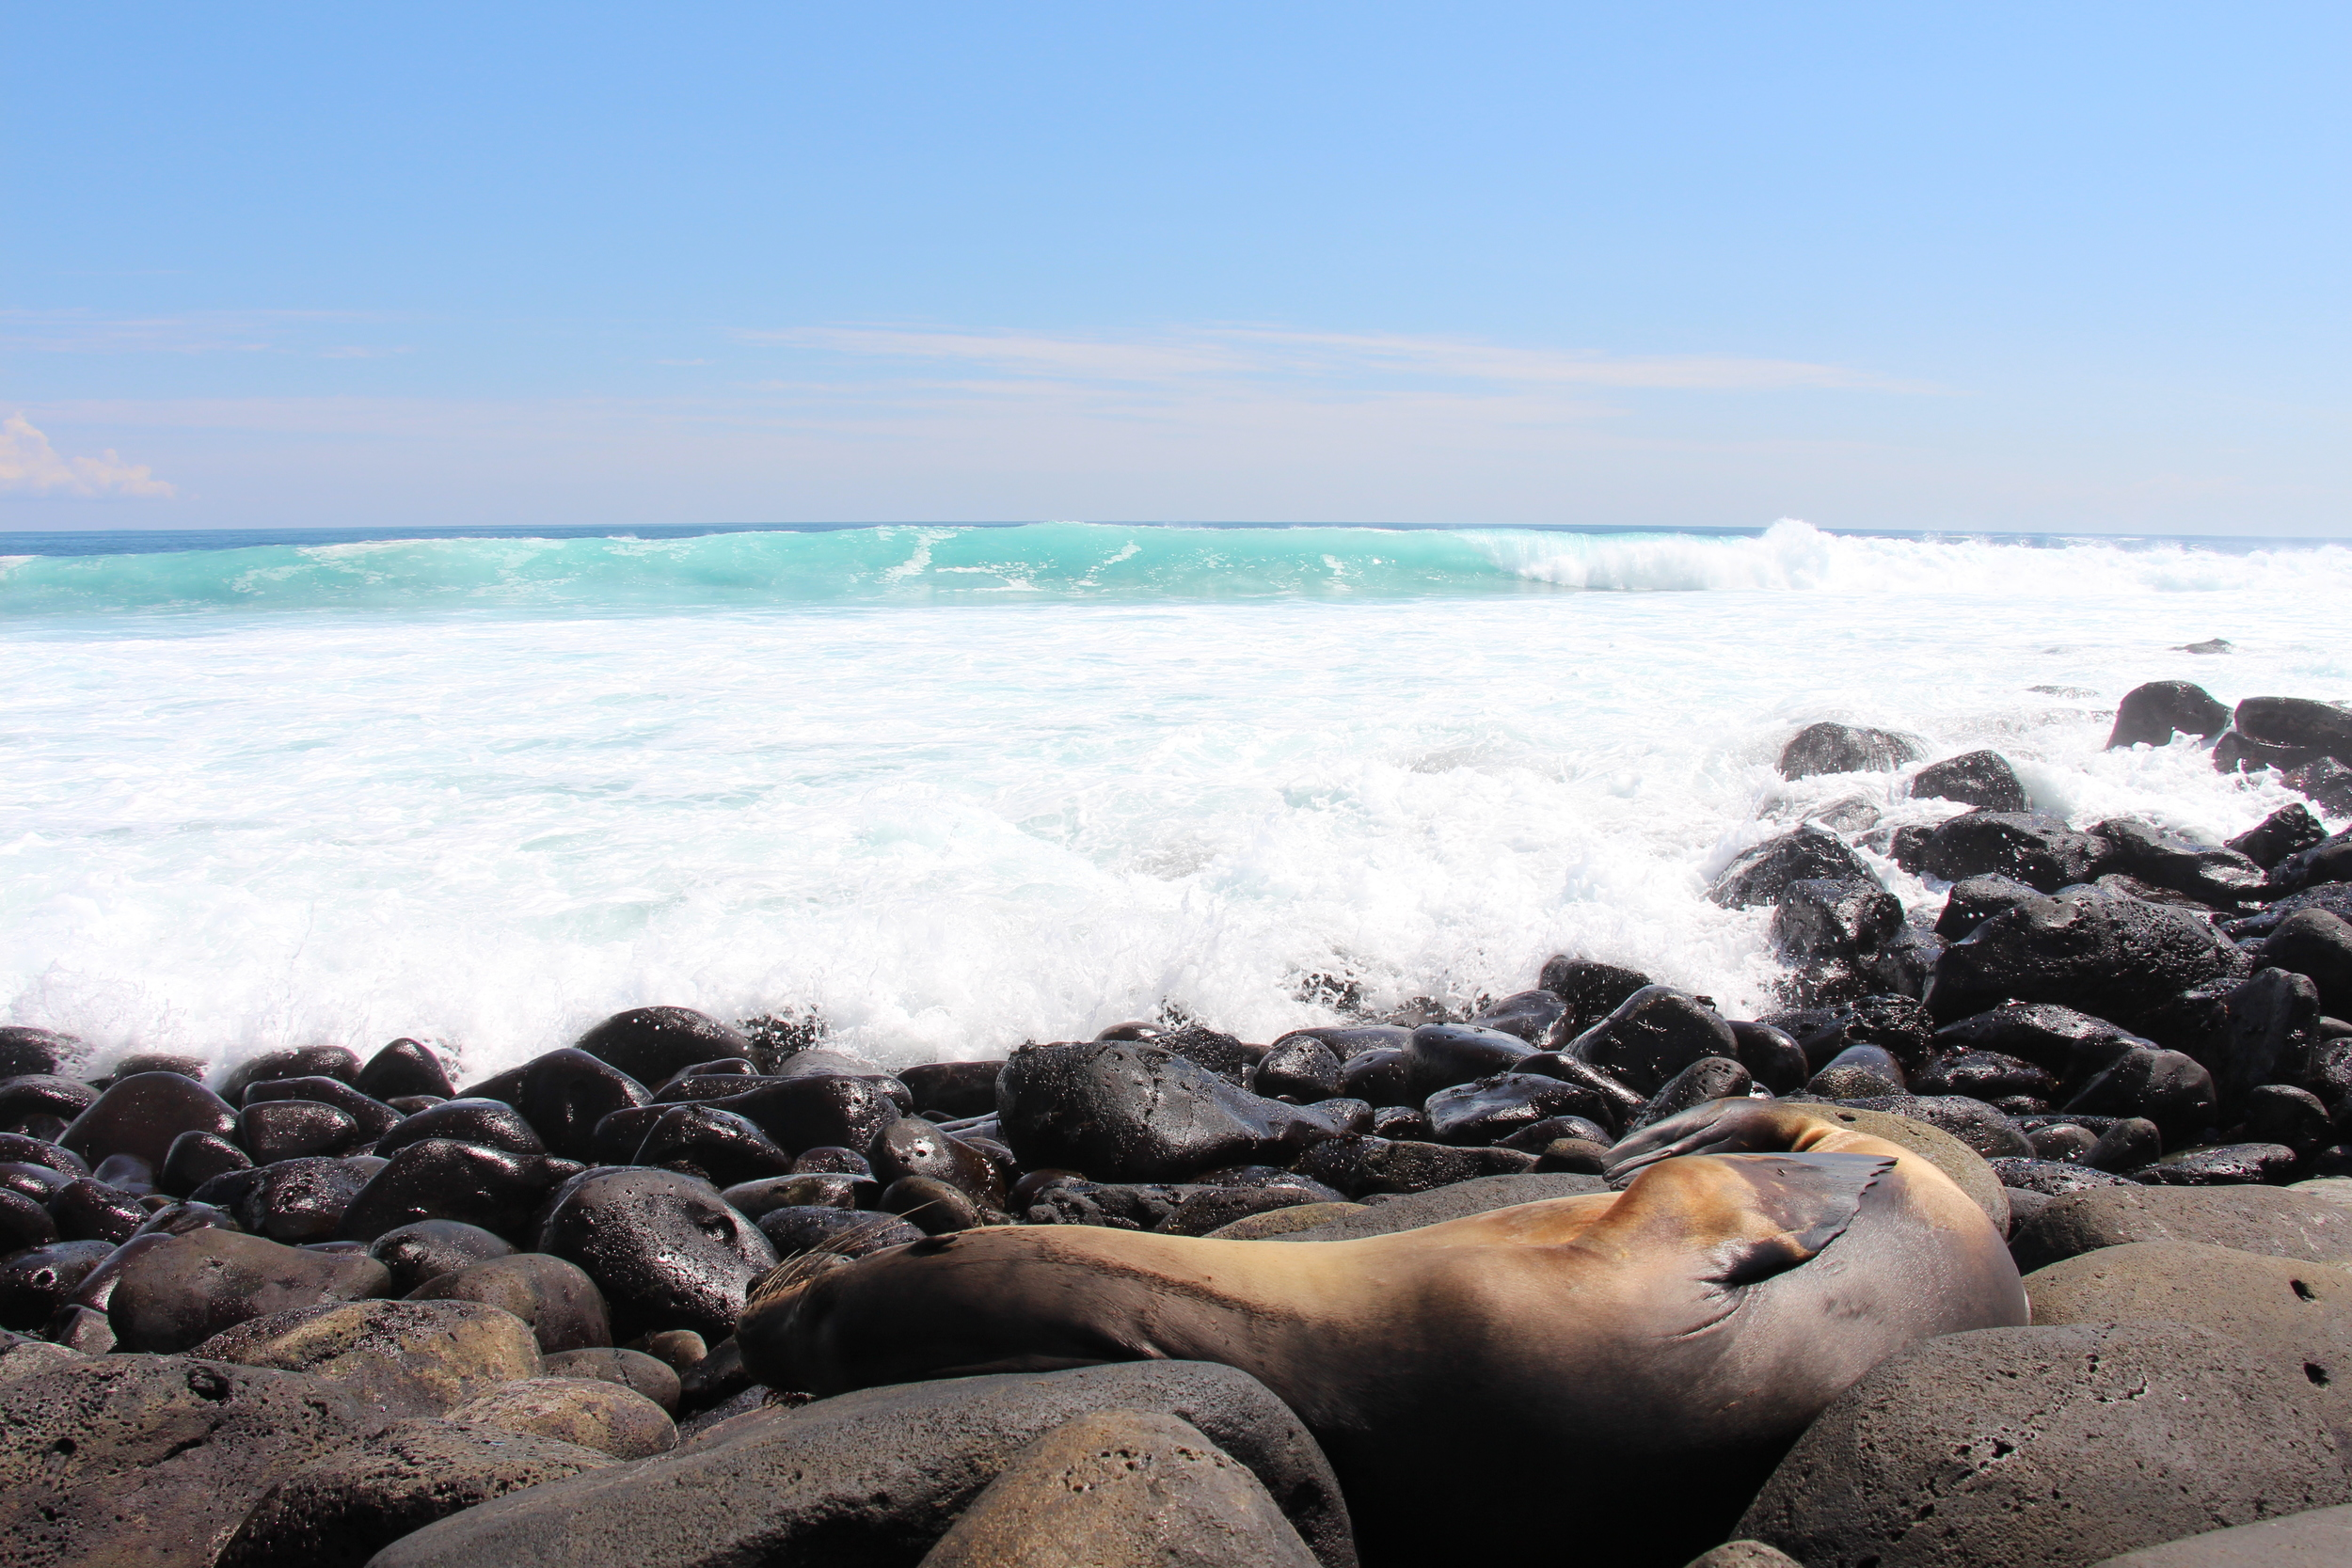 Sea Lion waiting for a refreshing wave